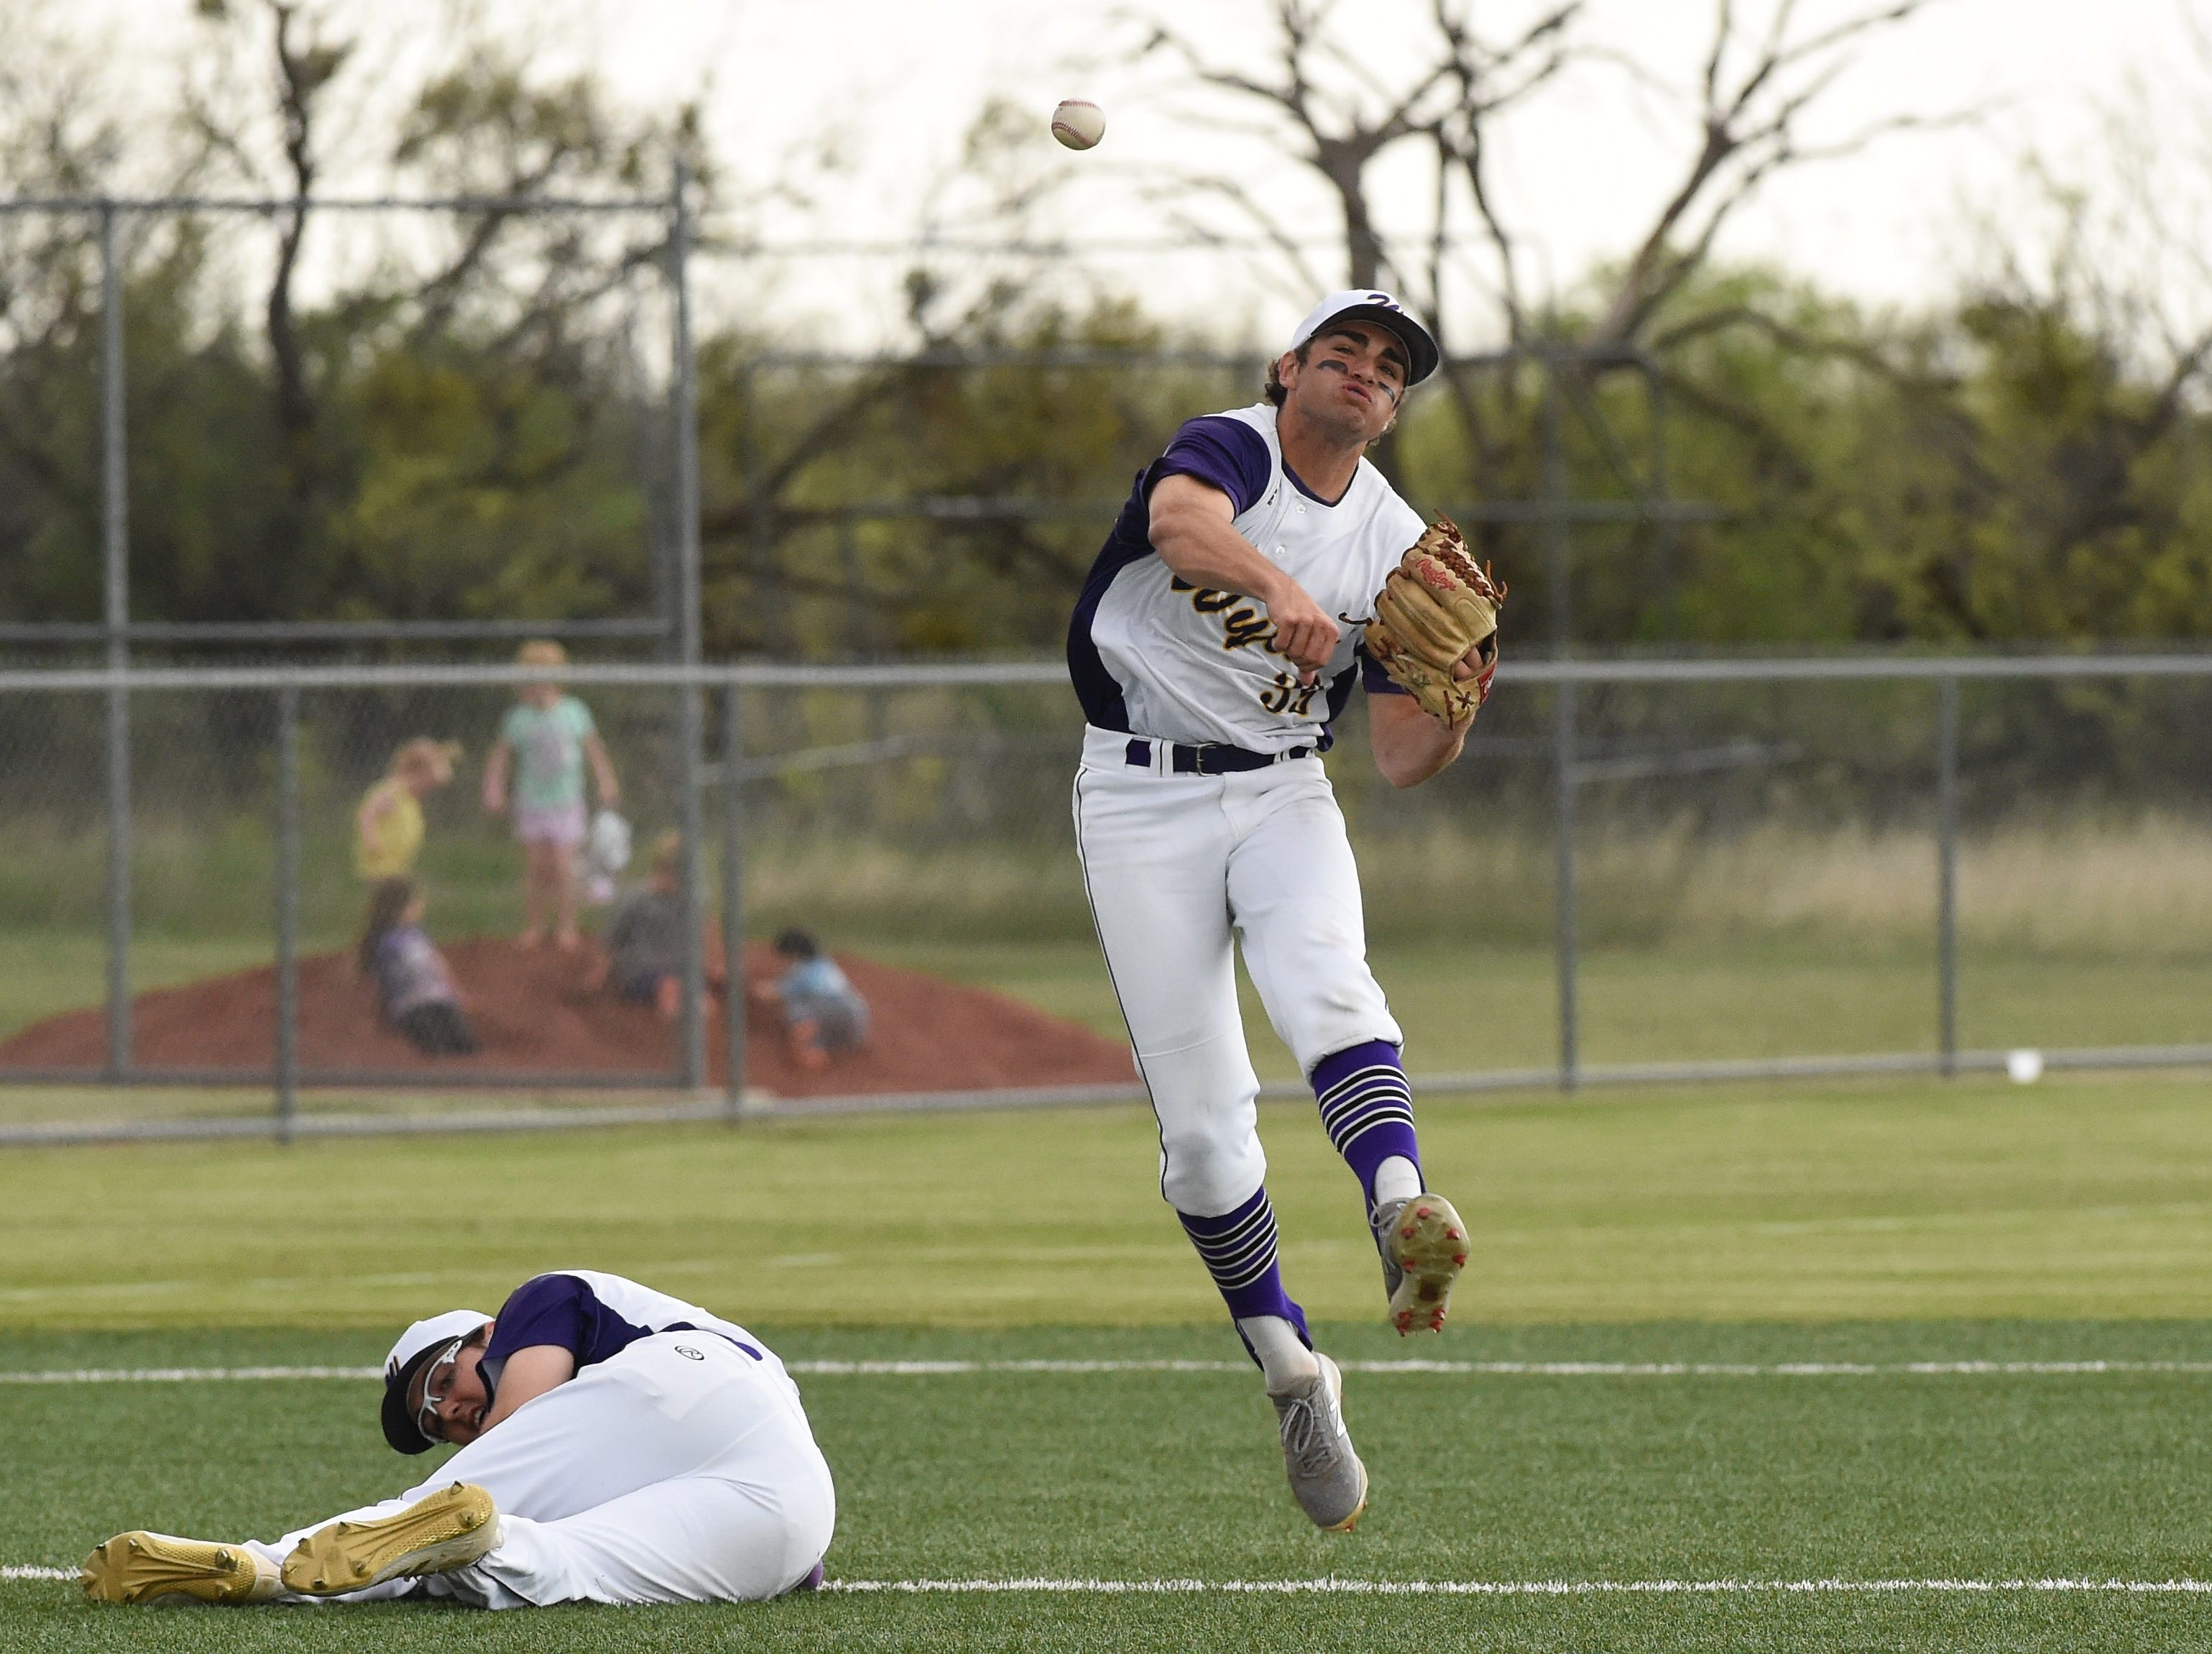 Wylie shortstop Jaxon Hansen (39) fires to first for an out against Cooper at Bulldog Field on Friday, April 12, 2019. Hansen accounted for six outs in the 4-3 win.